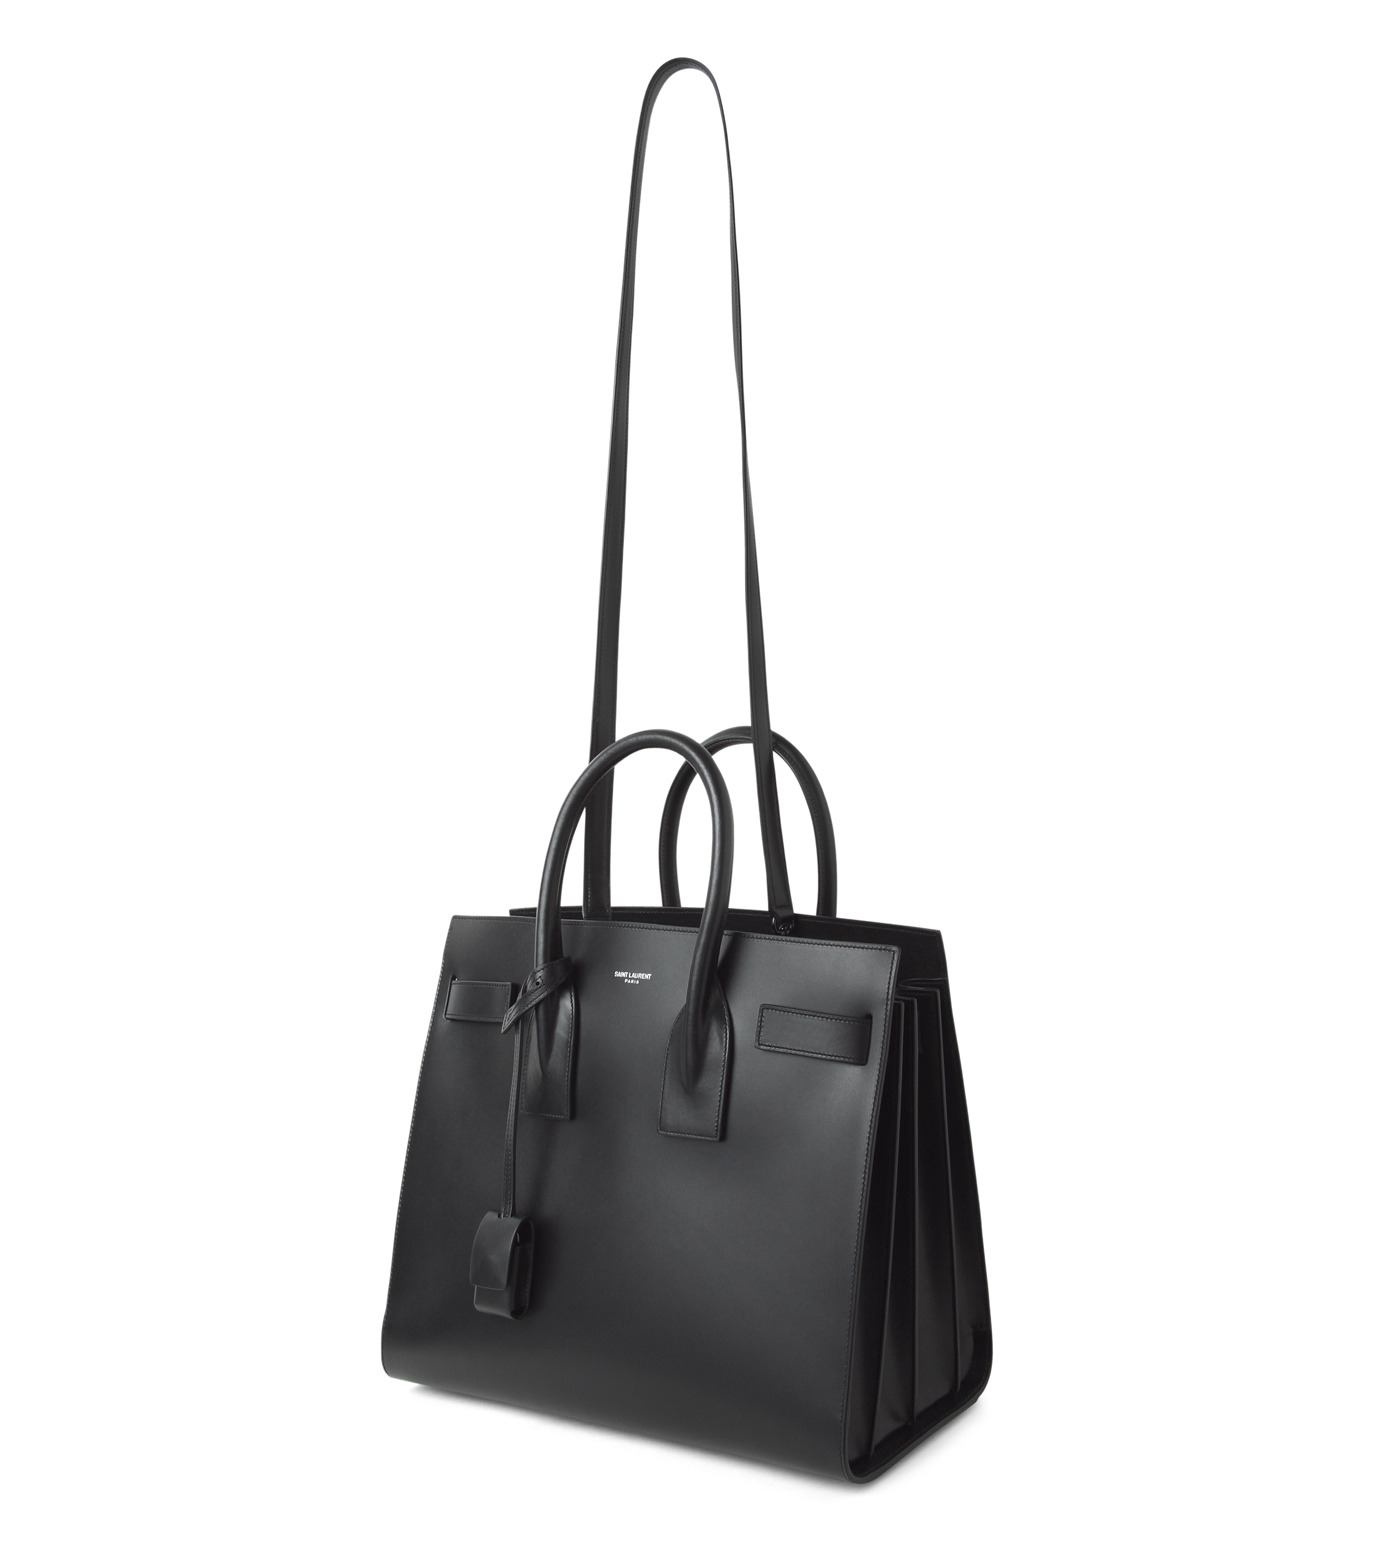 SAINT LAURENT(サンローラン)のSac de Jour Small Double Face-BLACK(ハンドバッグ/hand bag)-378299-BX62V-13 拡大詳細画像2